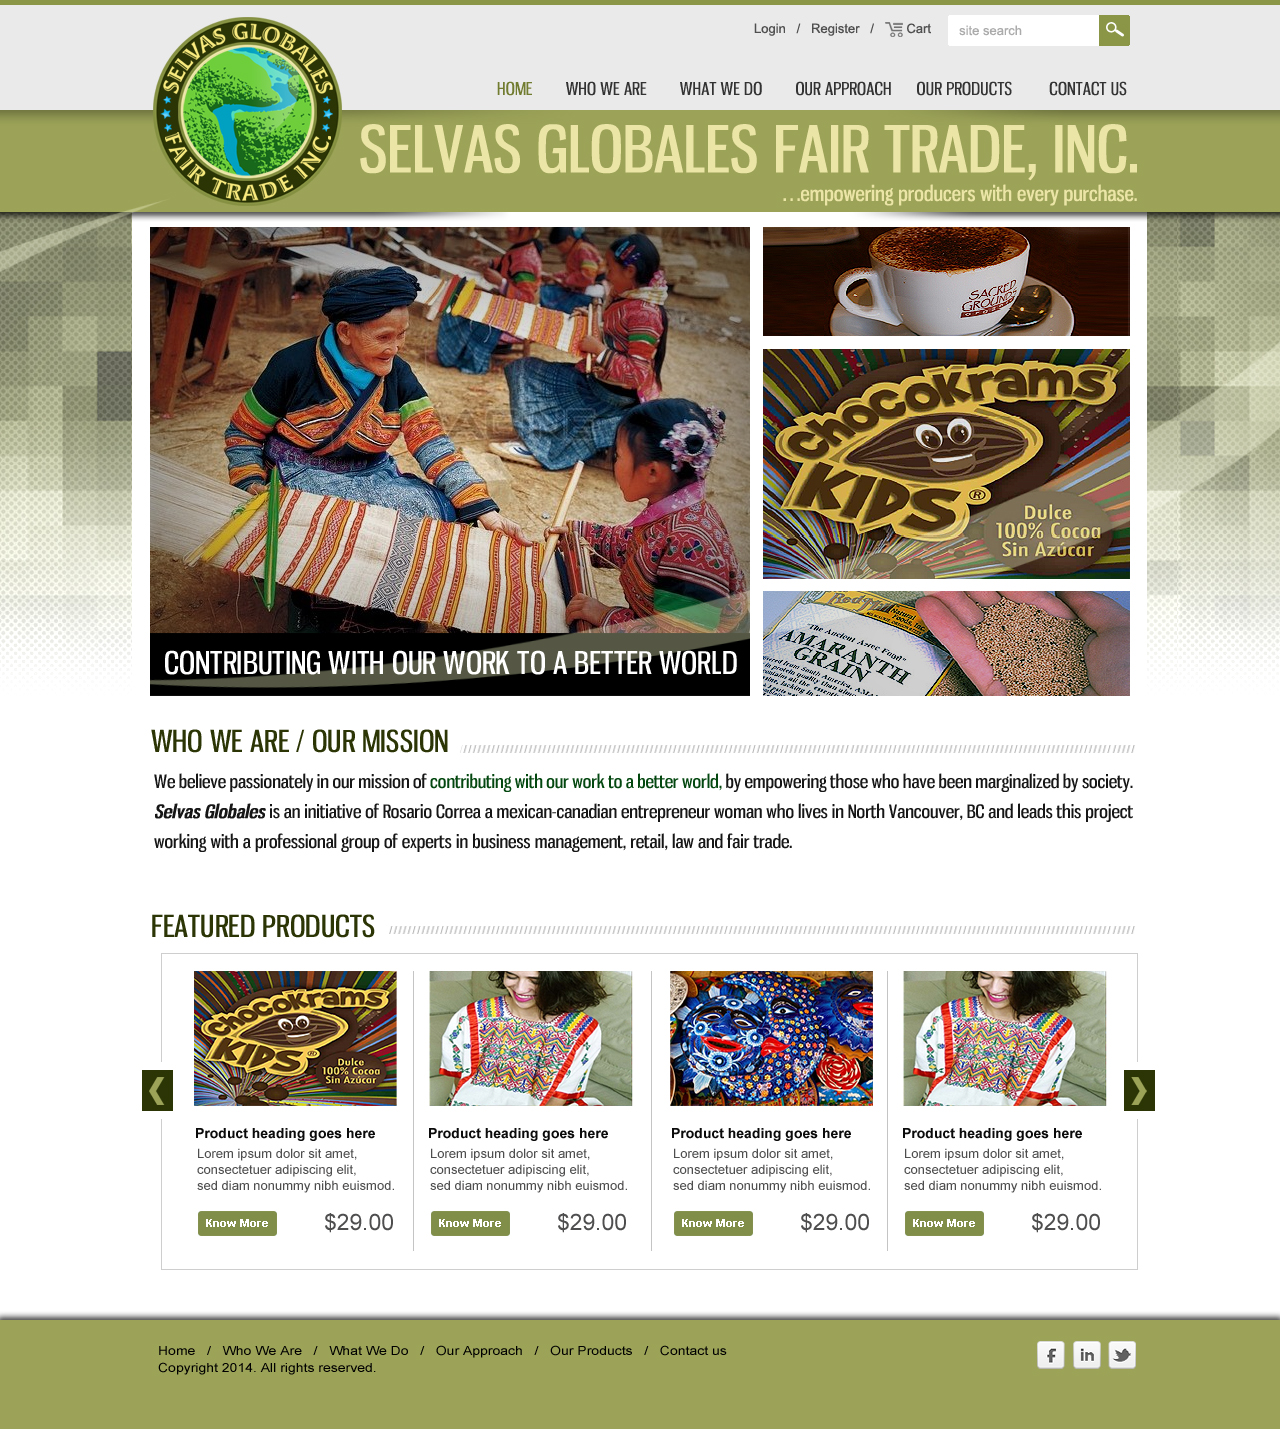 Web Page Design by webexprtz - Entry No. 7 in the Web Page Design Contest Inspiring Web Page Design for Selvas Globales Fair Trade Inc..